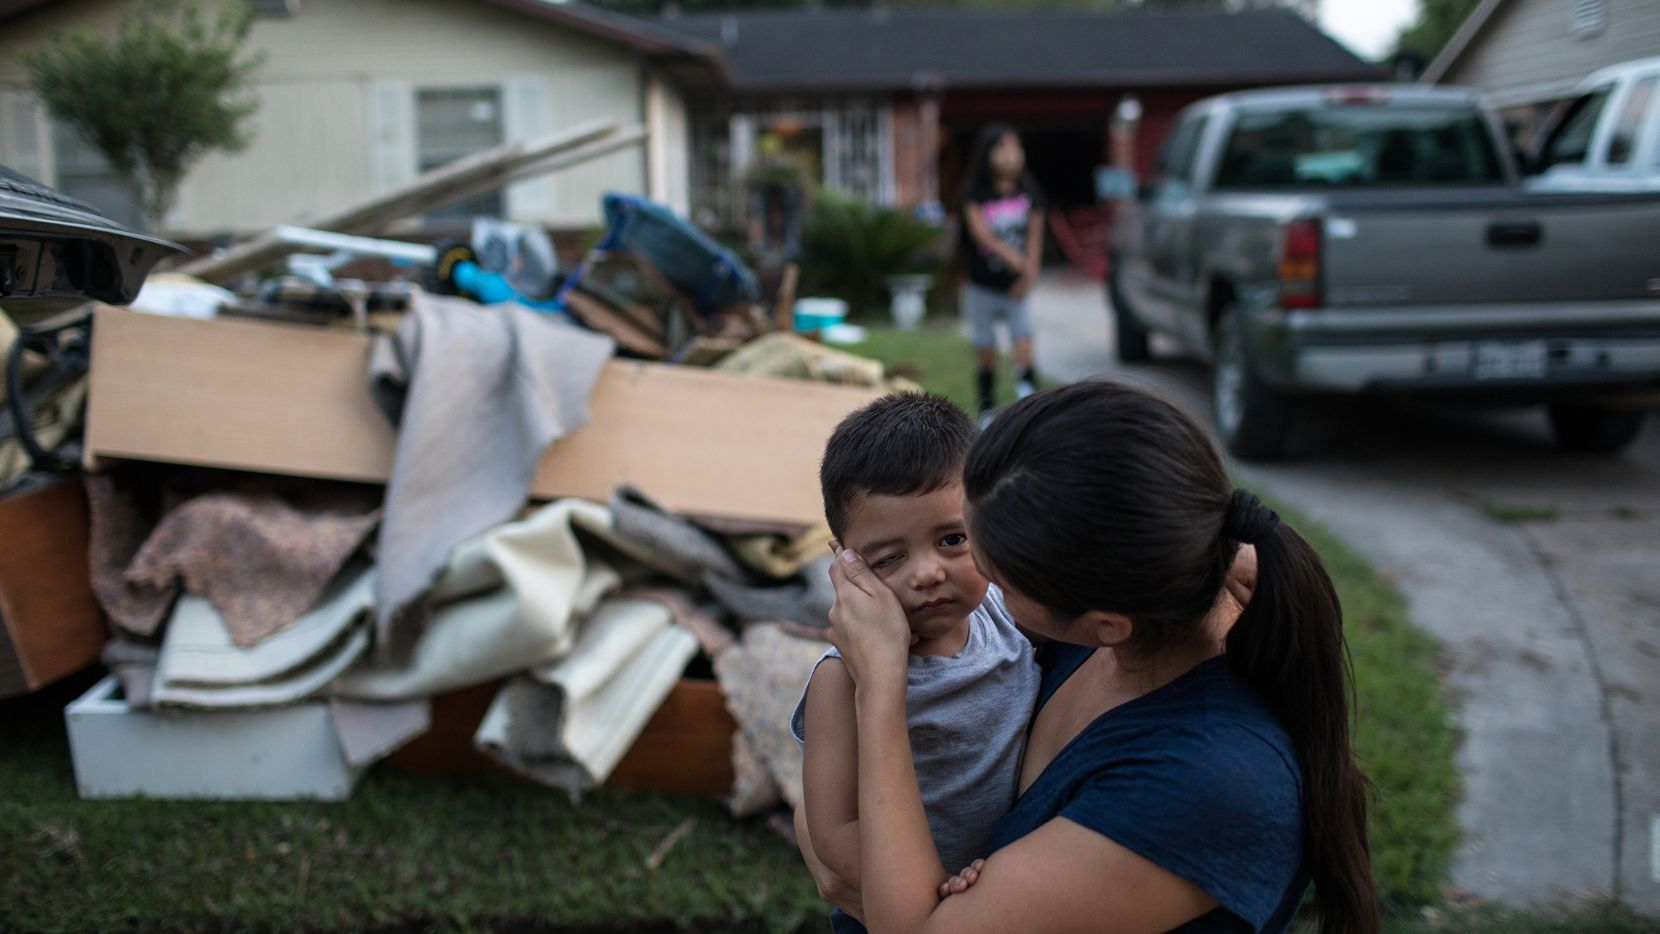 Sabrina Rodriguez wiped away a tear as she comforted her son, Eder Cantero, 2, outside their flood-damaged home near Halls Bayou in Houston on Saturday. (Tamir Kalifa/The New York Times)